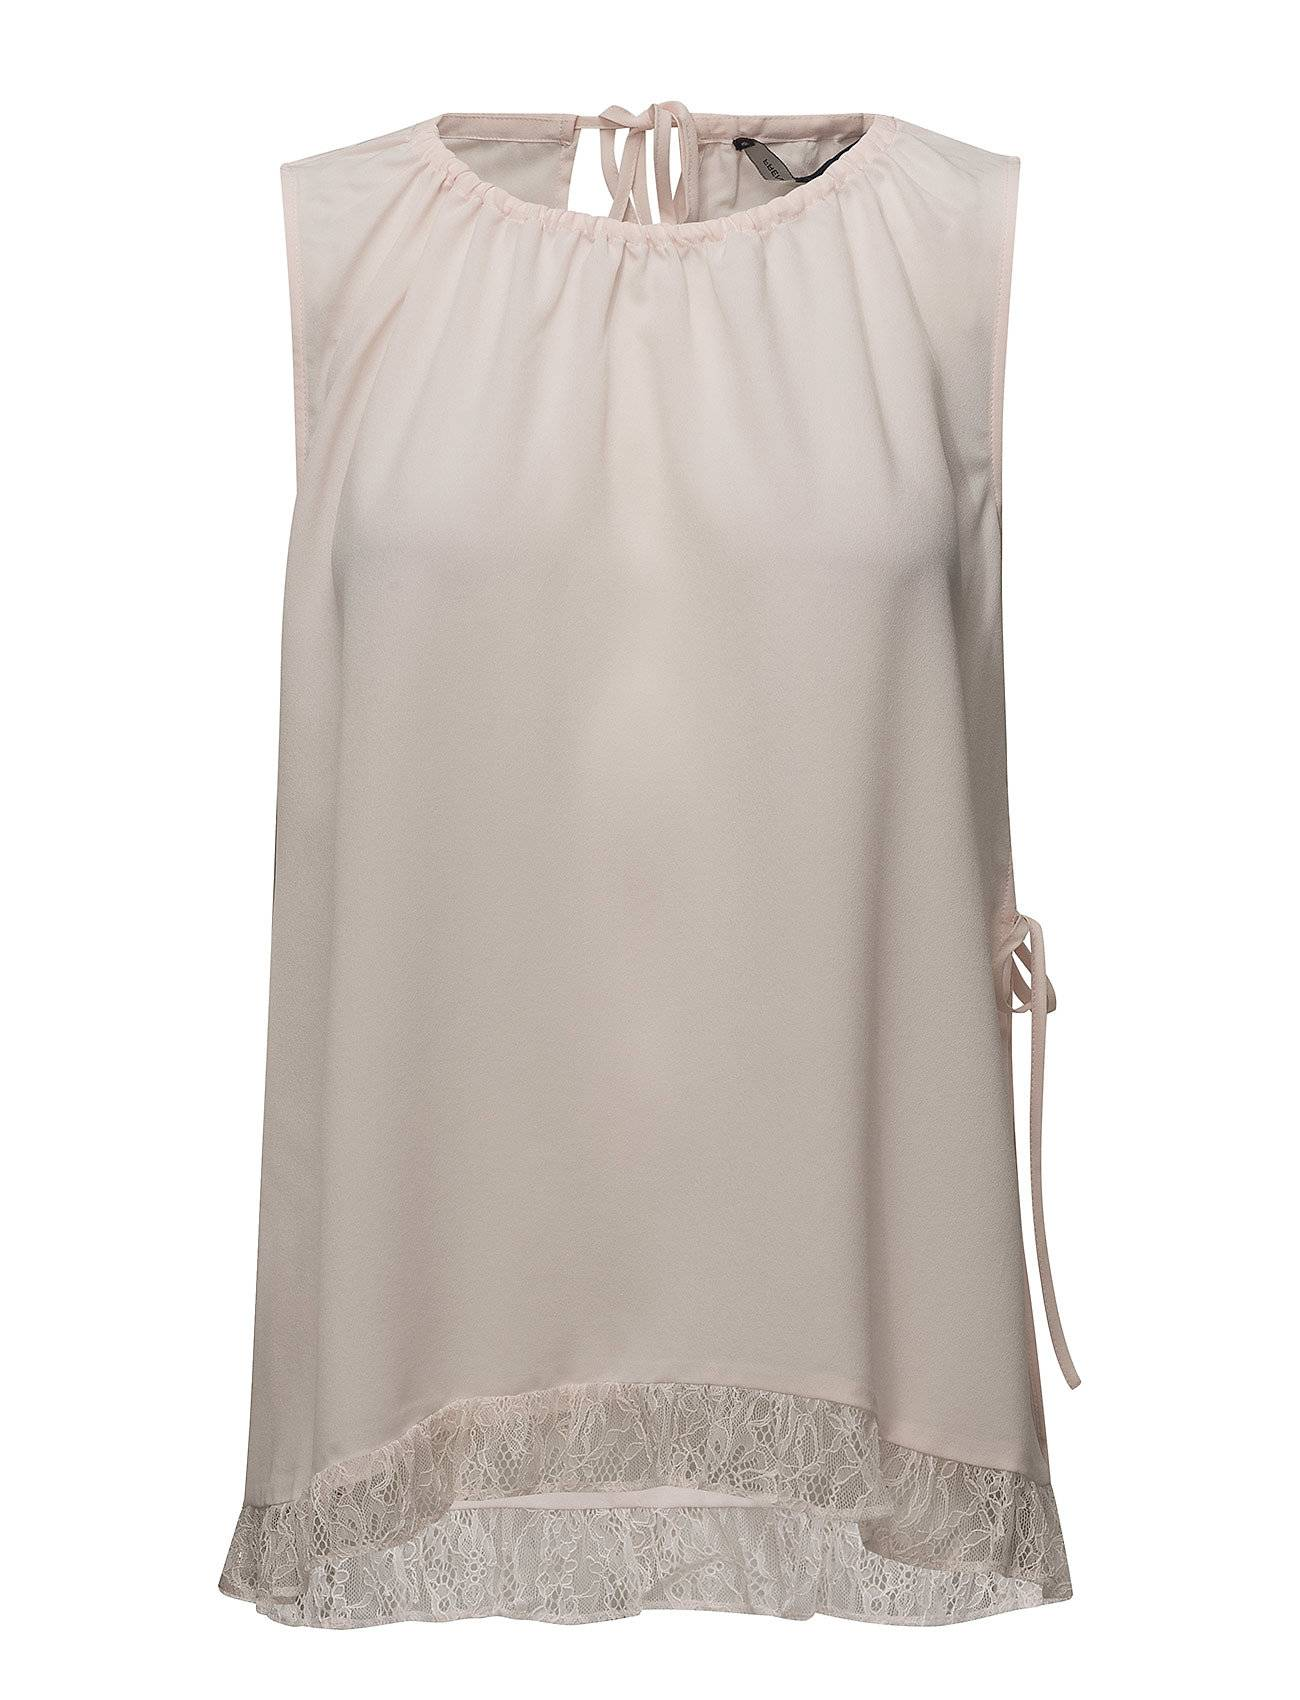 French Connection Classic Crepe Light Sleveless Top